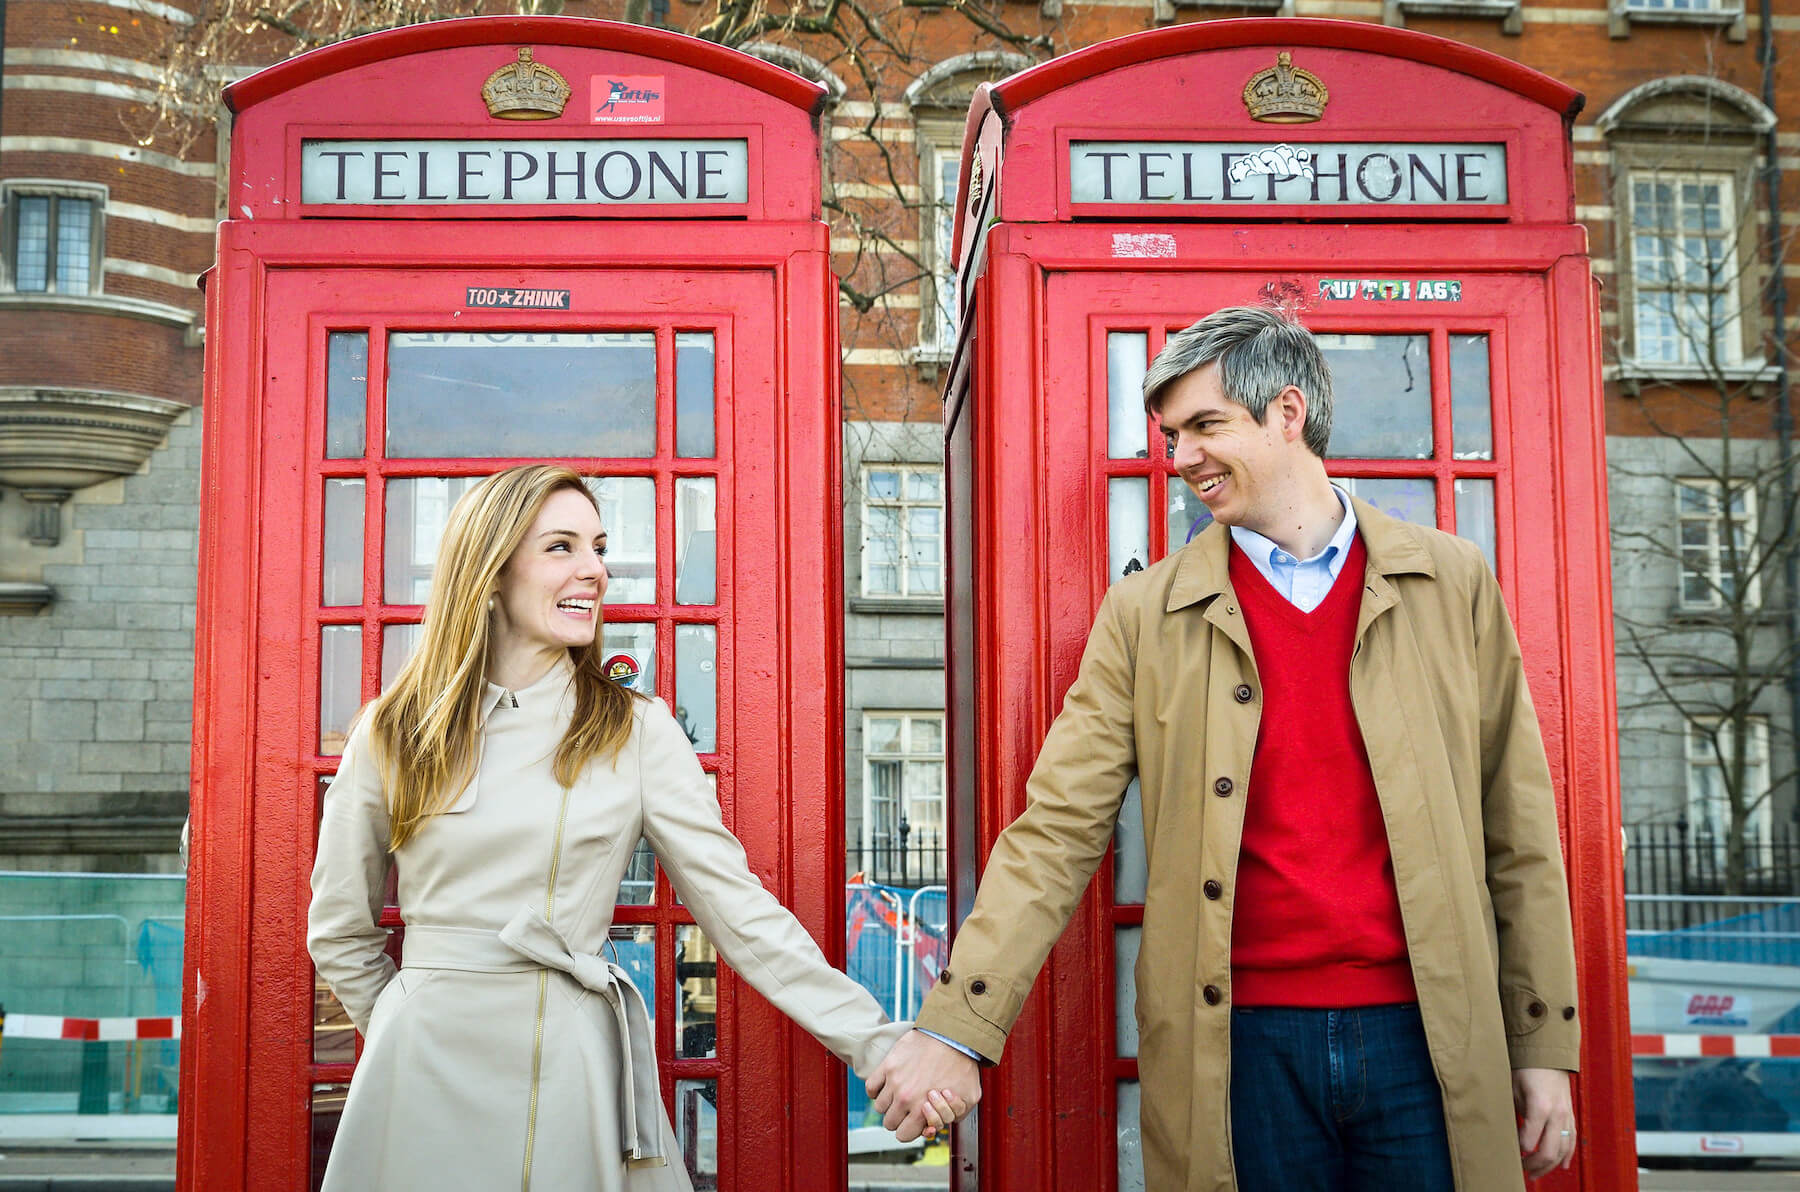 Couple holding hands and standing in front of iconic red telephone booths in London, UK